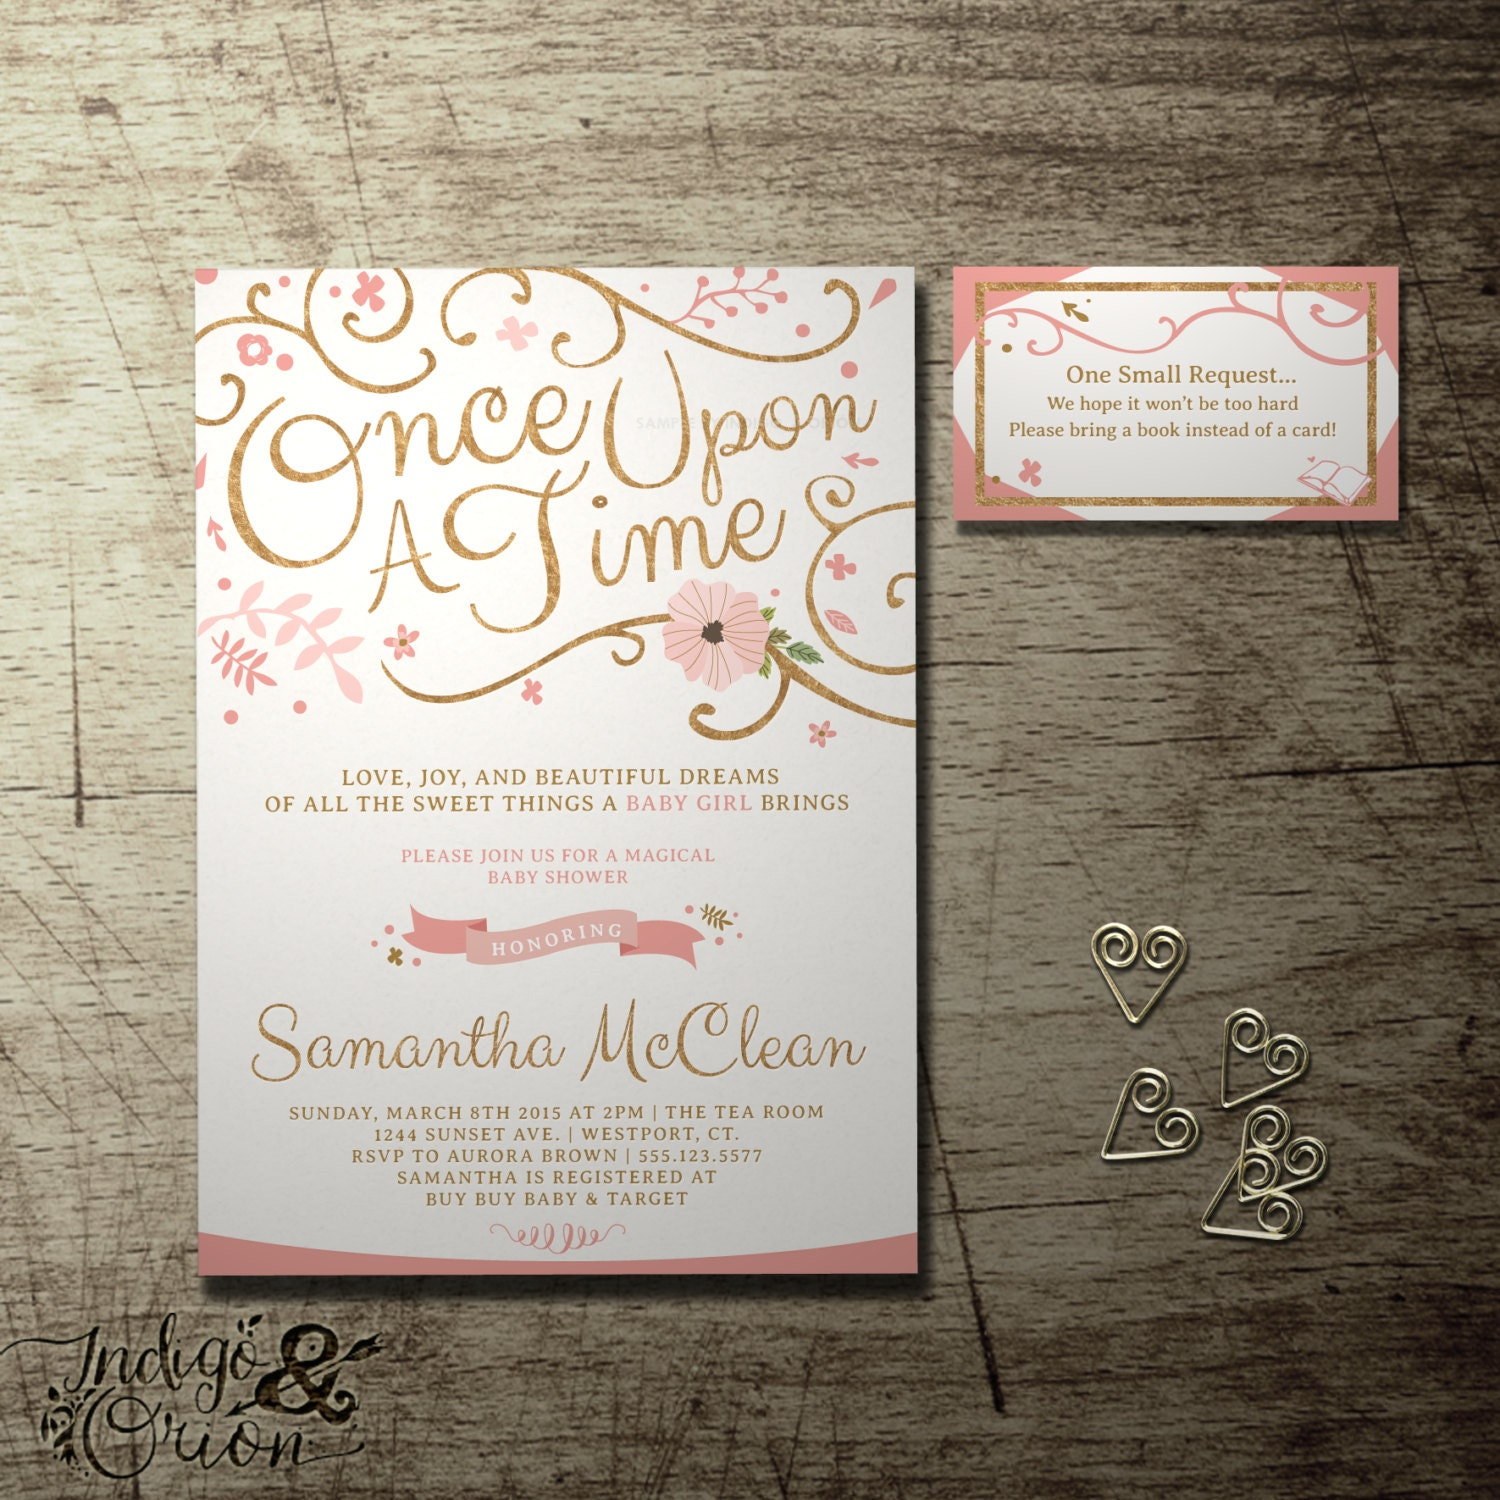 once upon a time wedding invitations - Yelom.myphonecompany.co